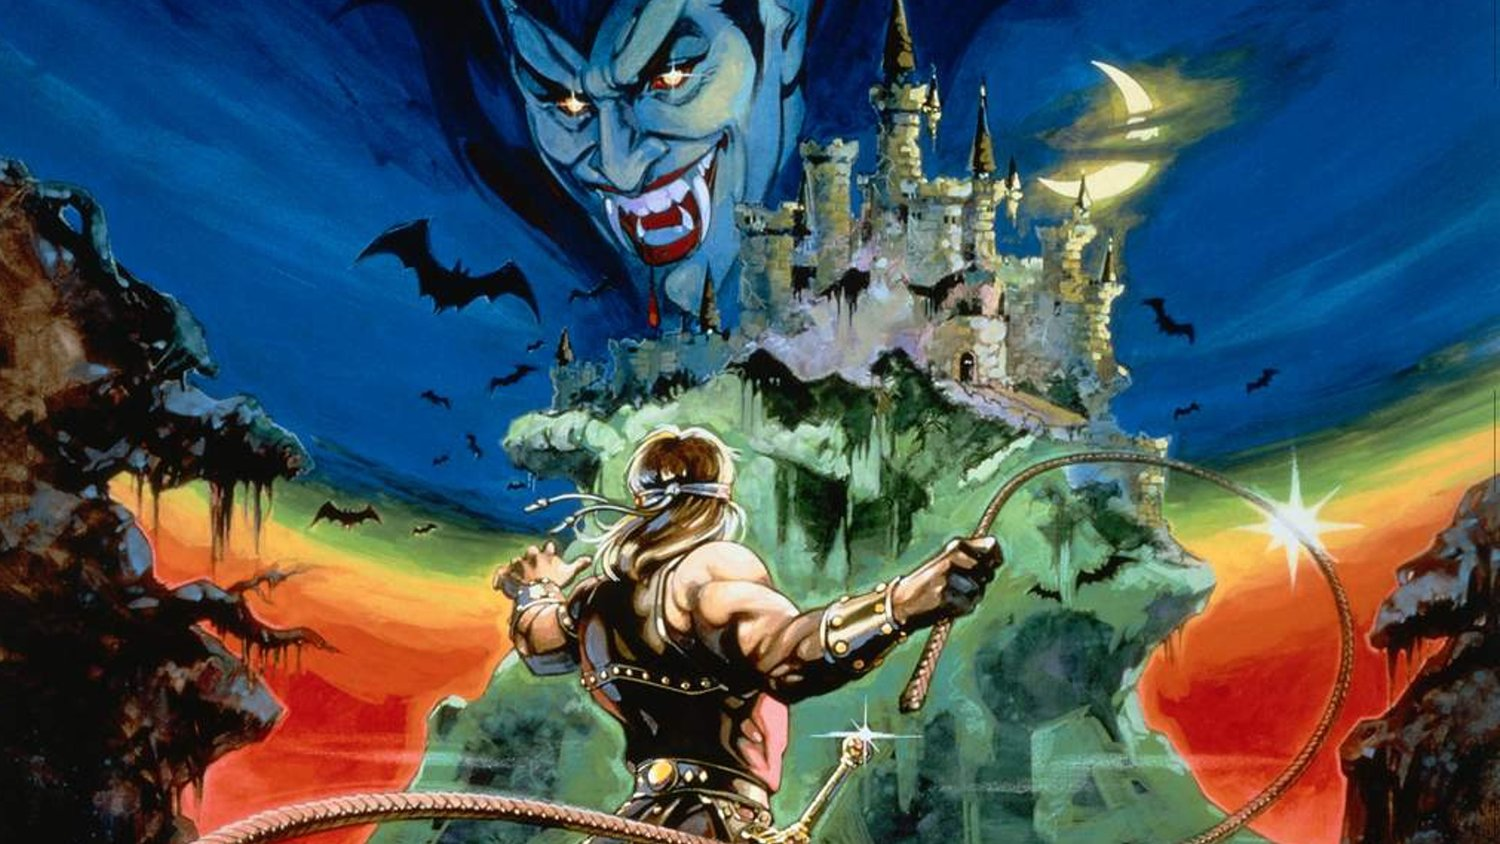 Netflix Announces a CASTLEVANIA TV Series Coming in 2017!